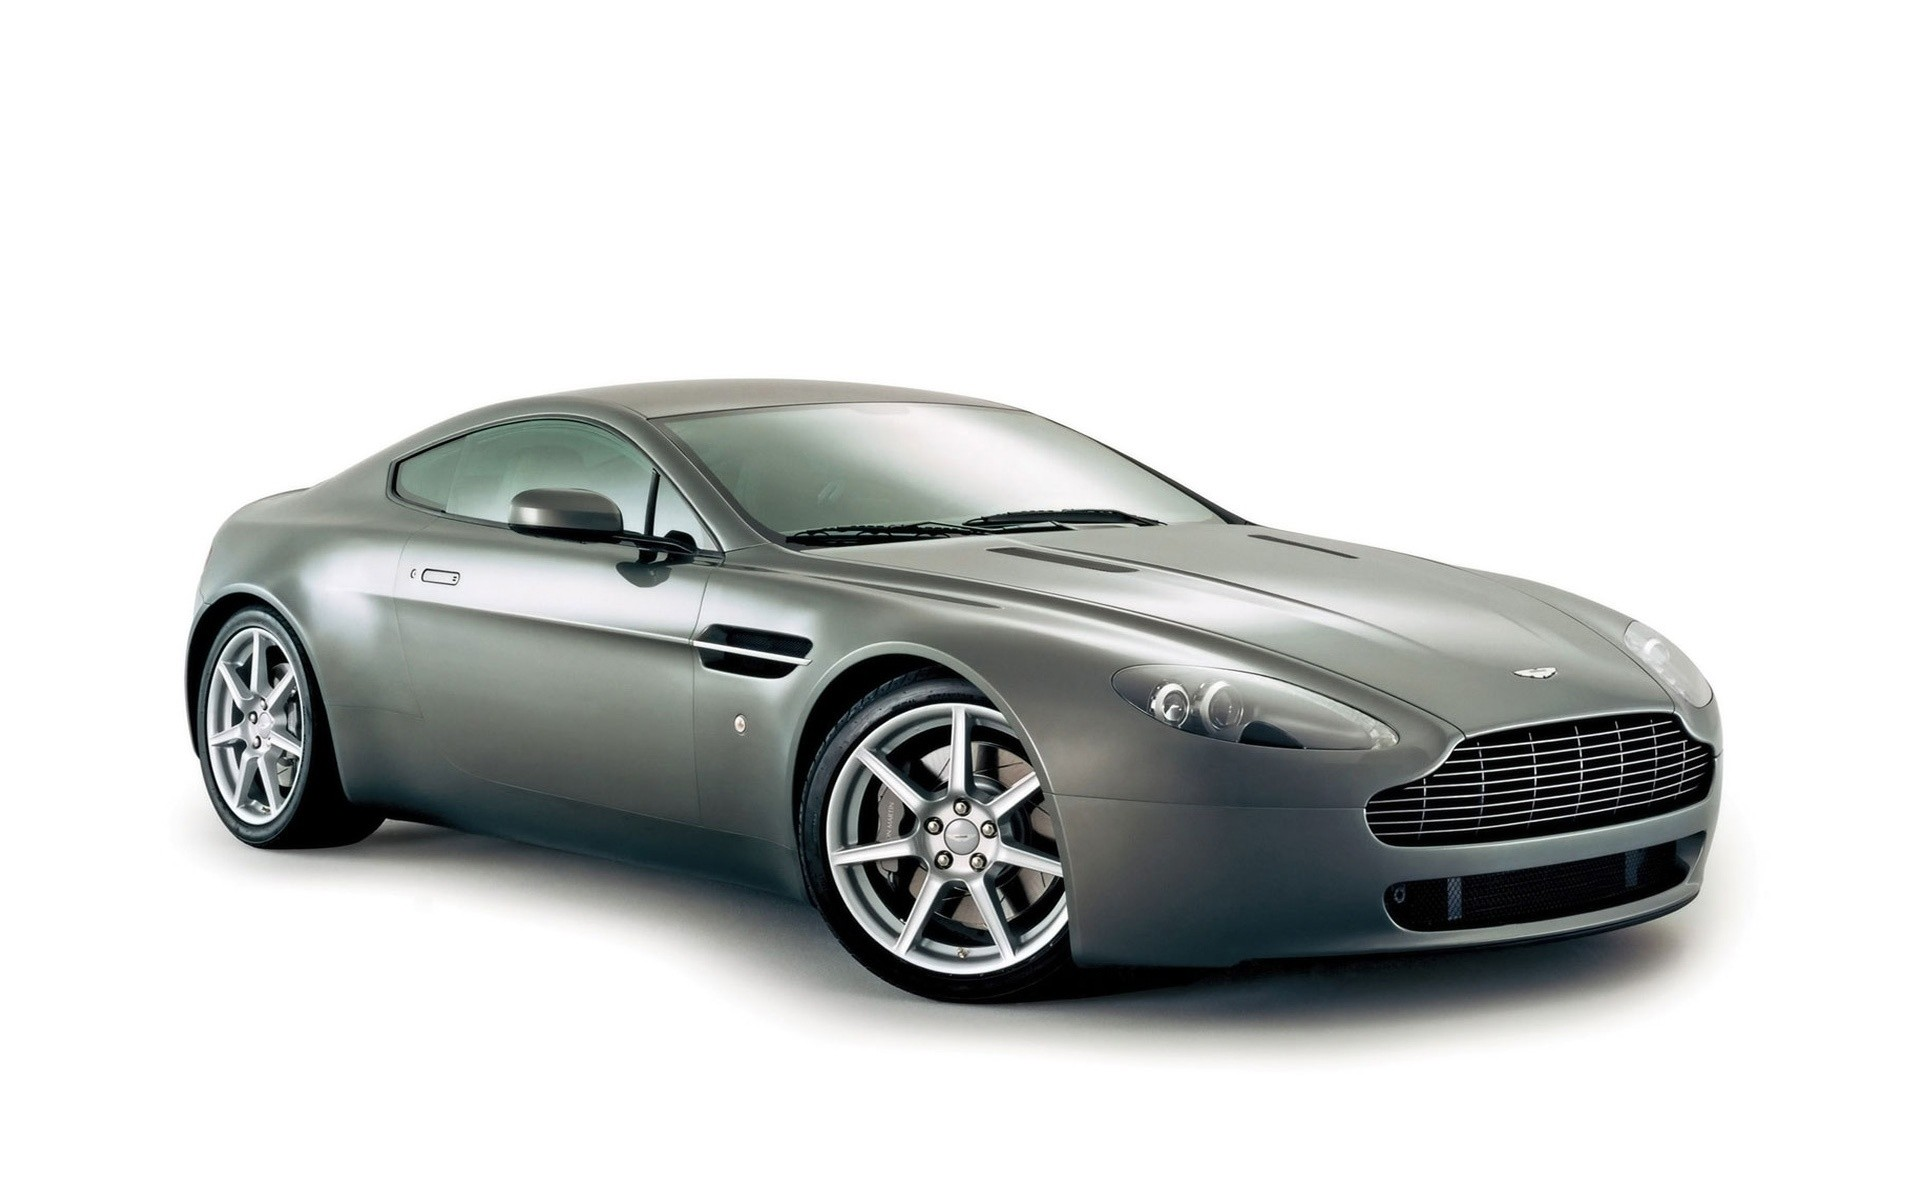 aston martin car wheel vehicle automotive fast coupe drive classic transportation system power chrome aston martin vantage